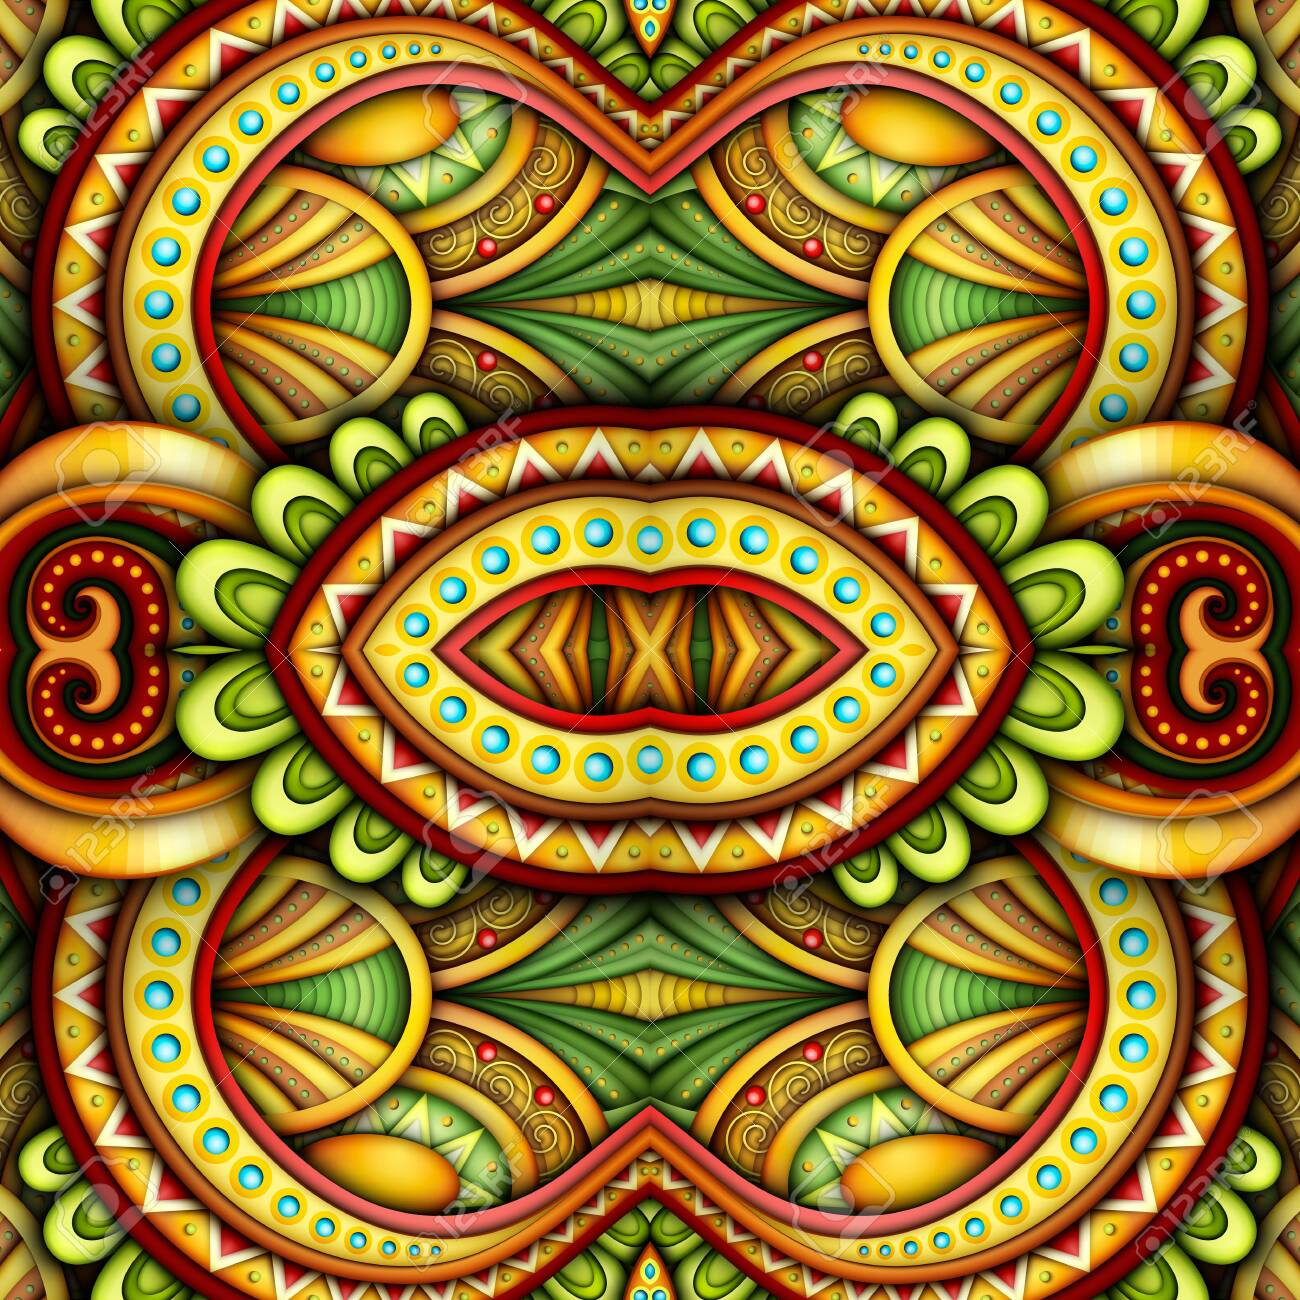 Colored Seamless Tile Pattern, Fantastic Kaleidoscope. Endless Ethnic Texture with Abstract Design Element. Khokhloma, Gypsy, Paisley Garden Style. Realistic Glossy Ornament. Vector 3d Illustration - 123982902